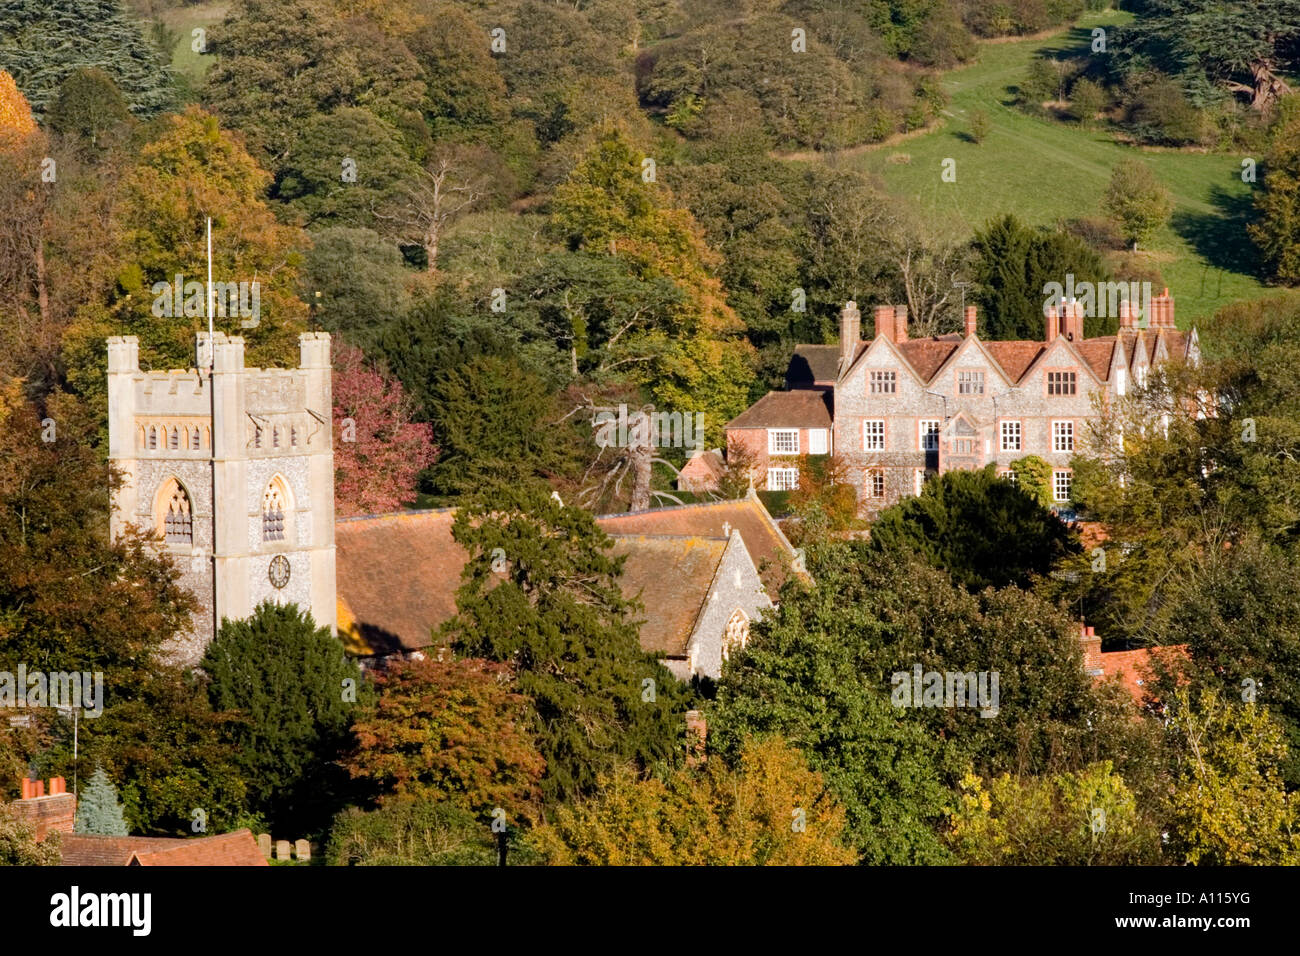 Hambleden Village - Thames Valley - Buckinghamshire - Stock Image